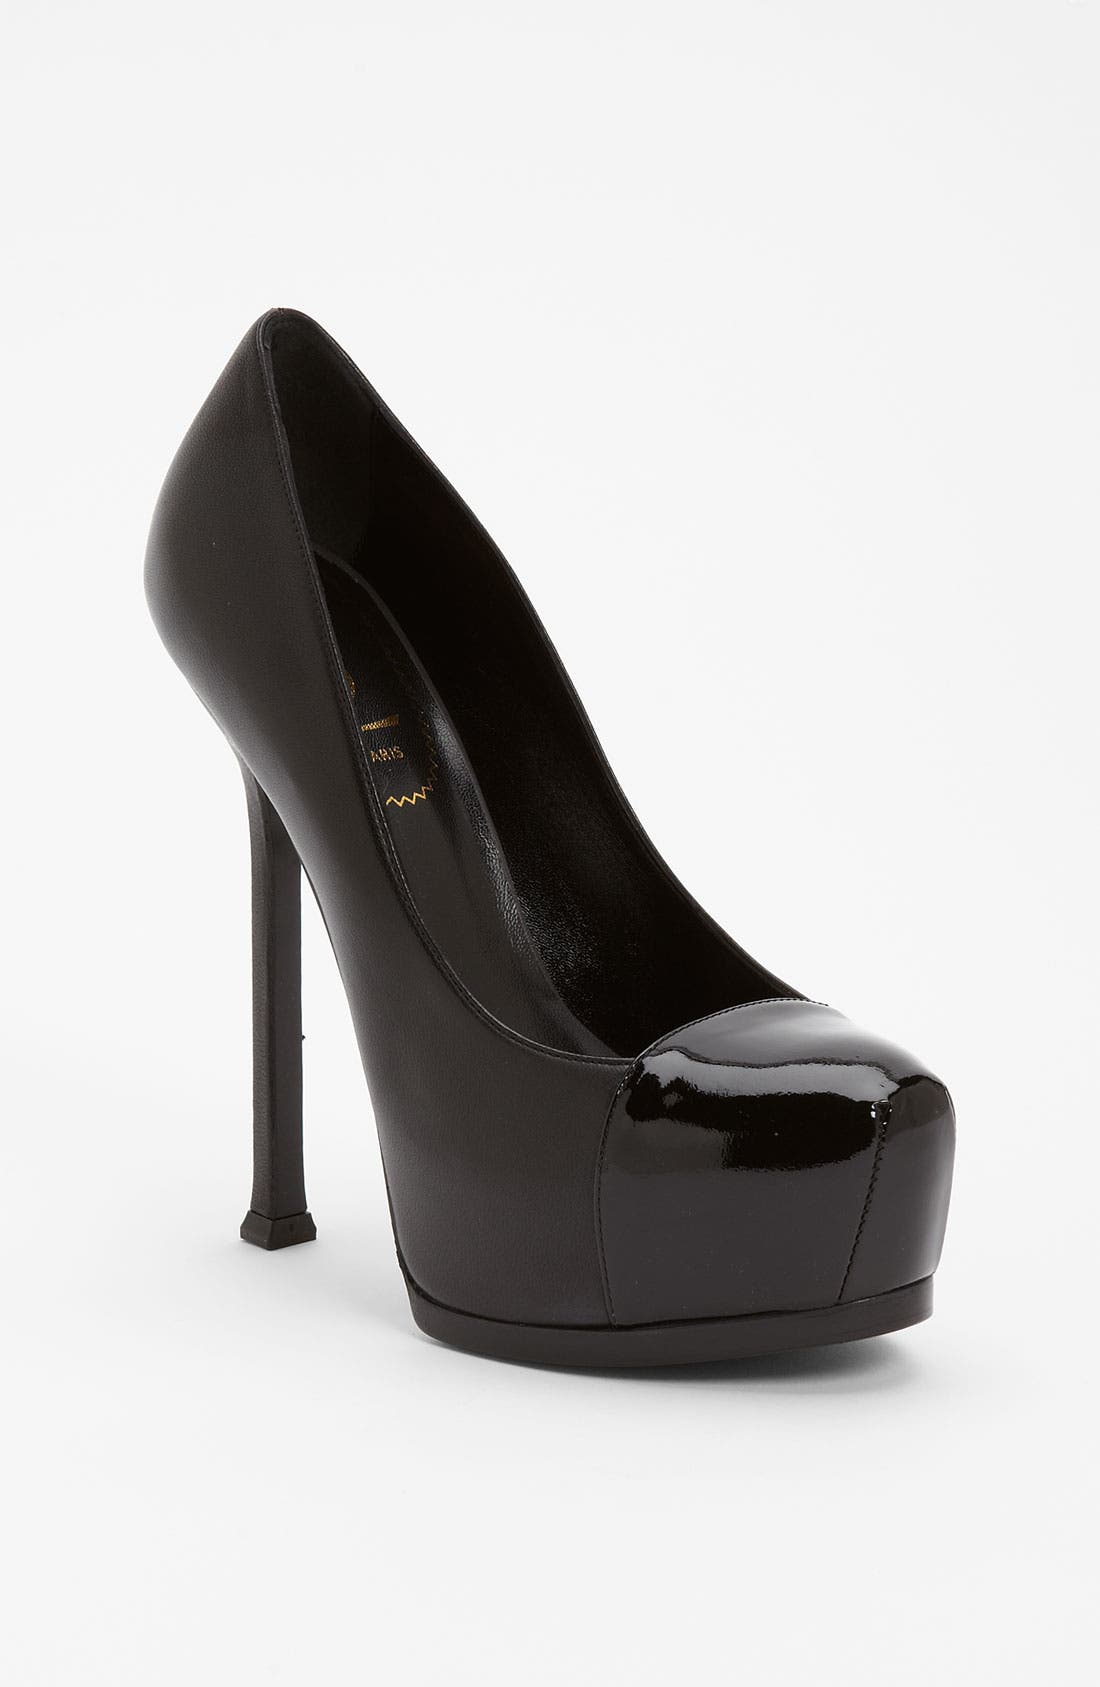 Main Image - Yves Saint Laurent 'Tribtoo' Cap Toe Ultra High Platform Pump